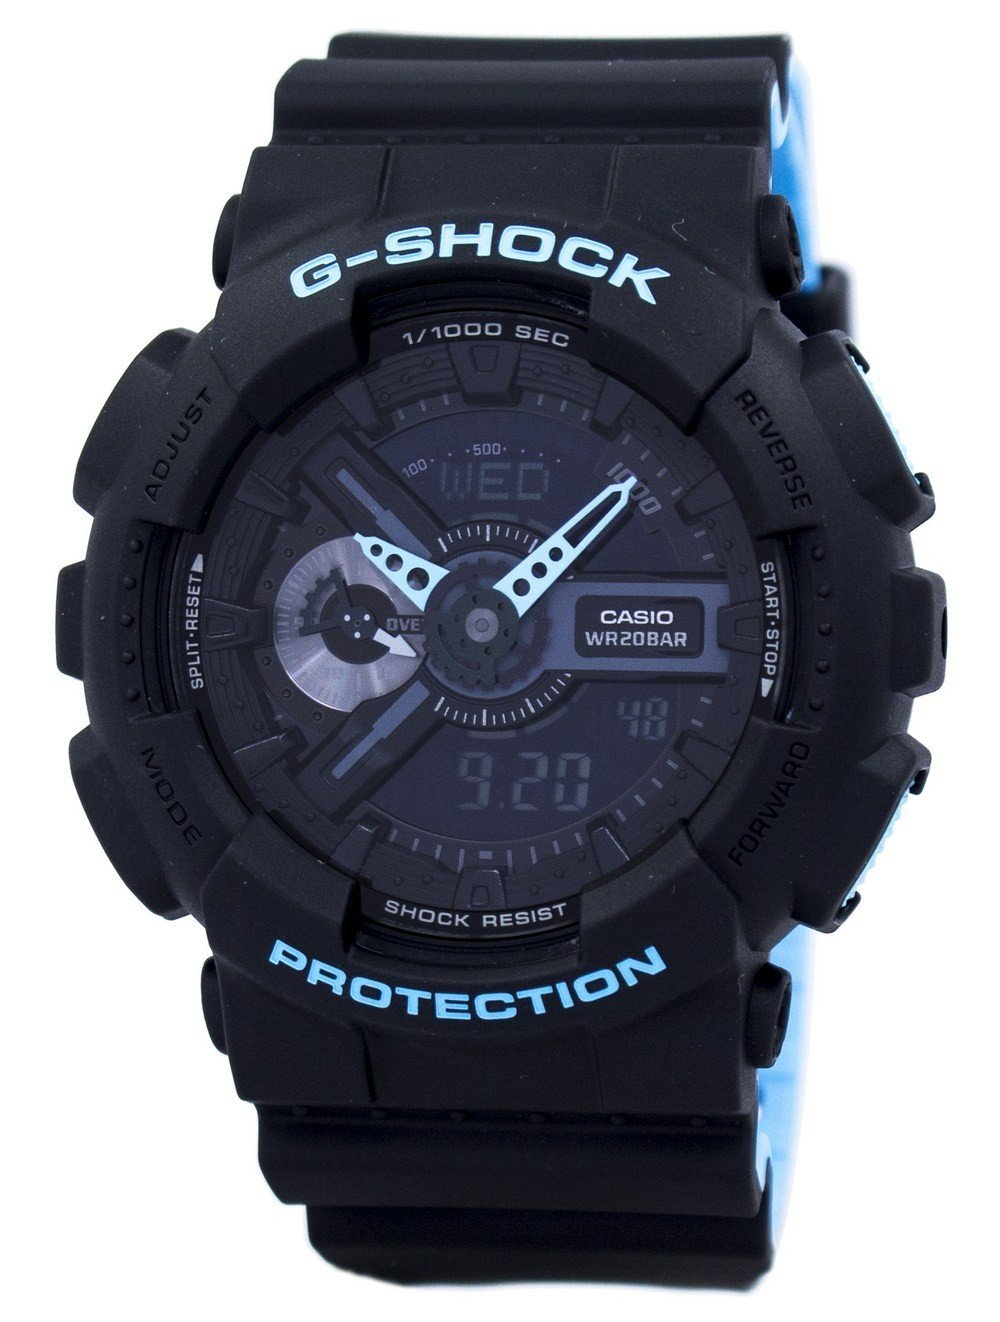 Casio G-Shock Shock Resistant World Time Alarm Analog Digital GA-110LN-1A GA110LN-1A Men's Watch